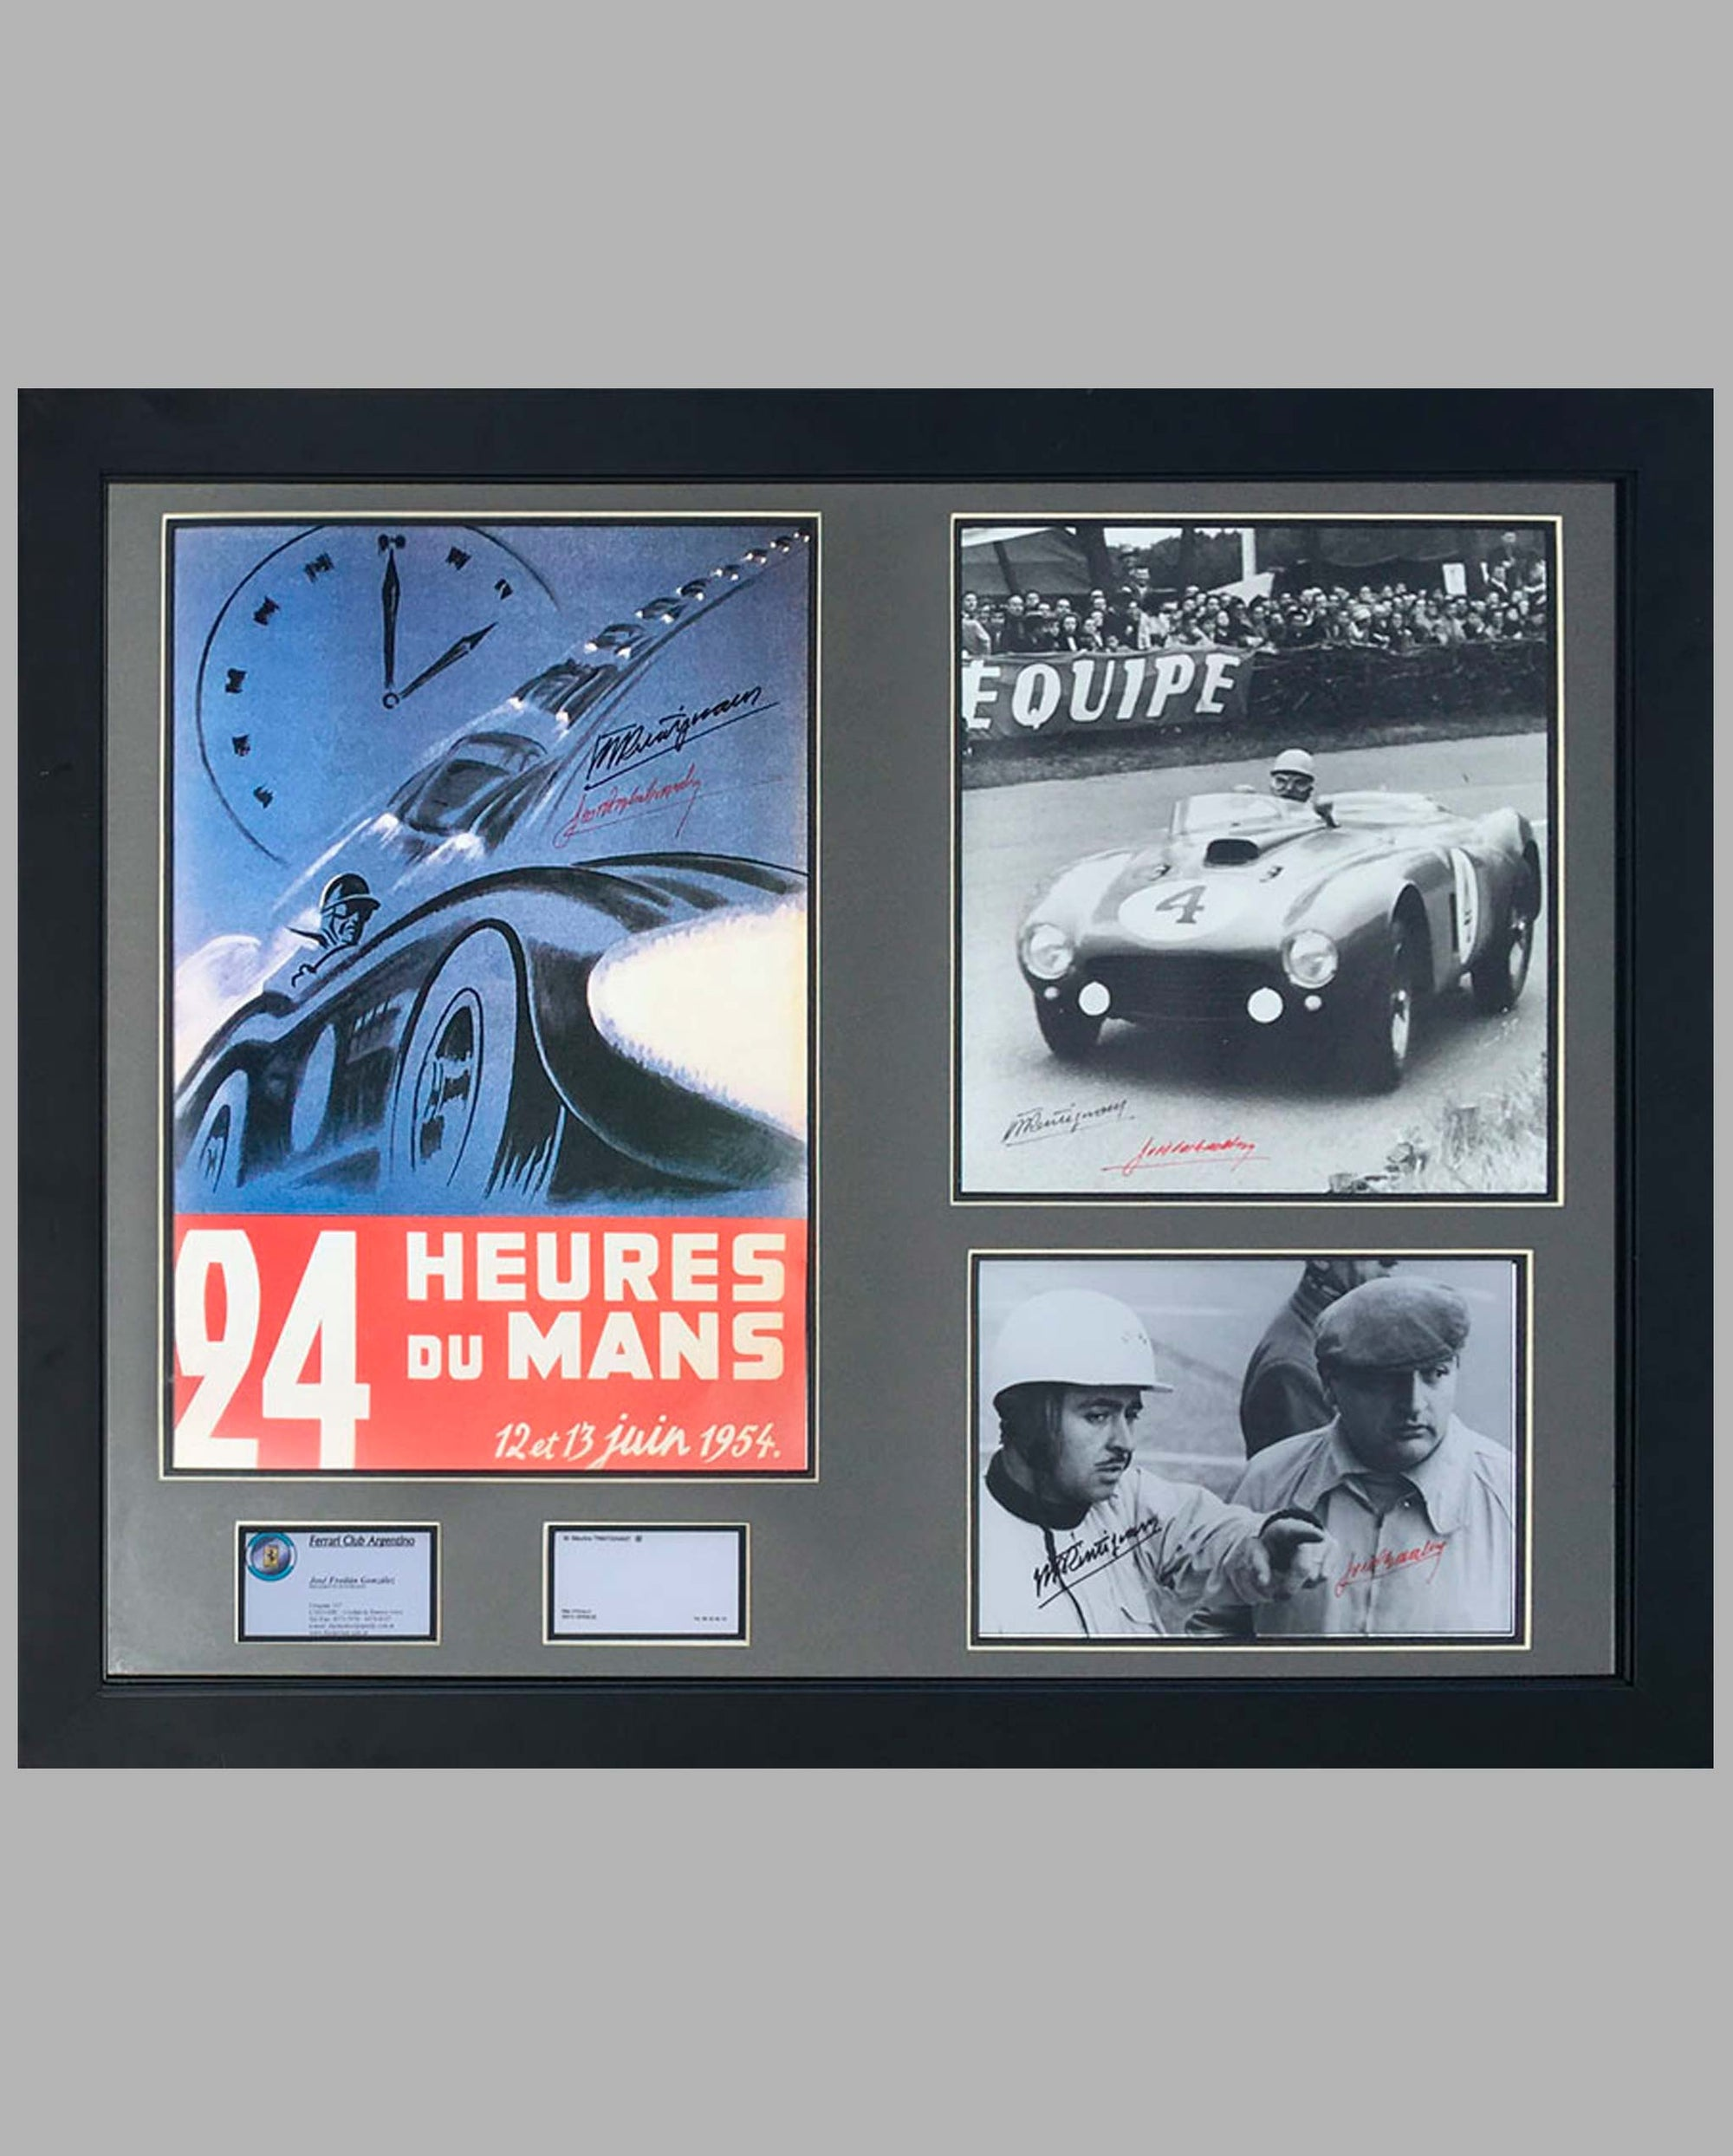 1954 - 24 Hours of Le Mans, ACO reproduction poster, Autographed by Maurice Trintignant and Jose Froilan Gonzalez